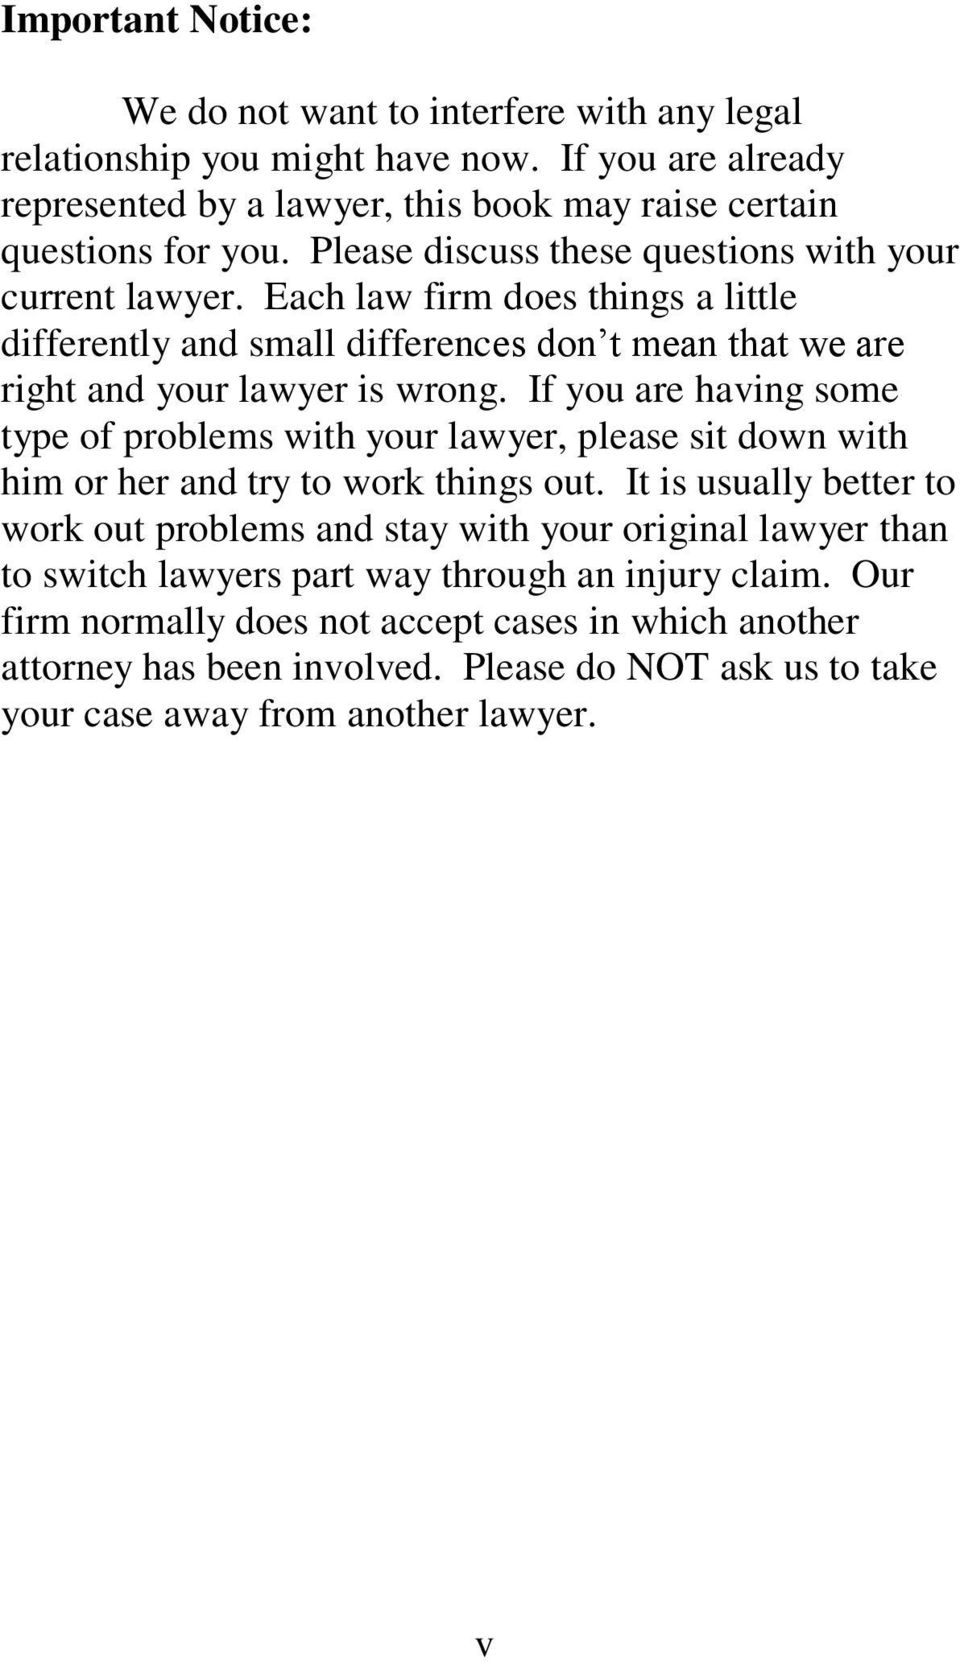 If you are having some type of problems with your lawyer, please sit down with him or her and try to work things out.